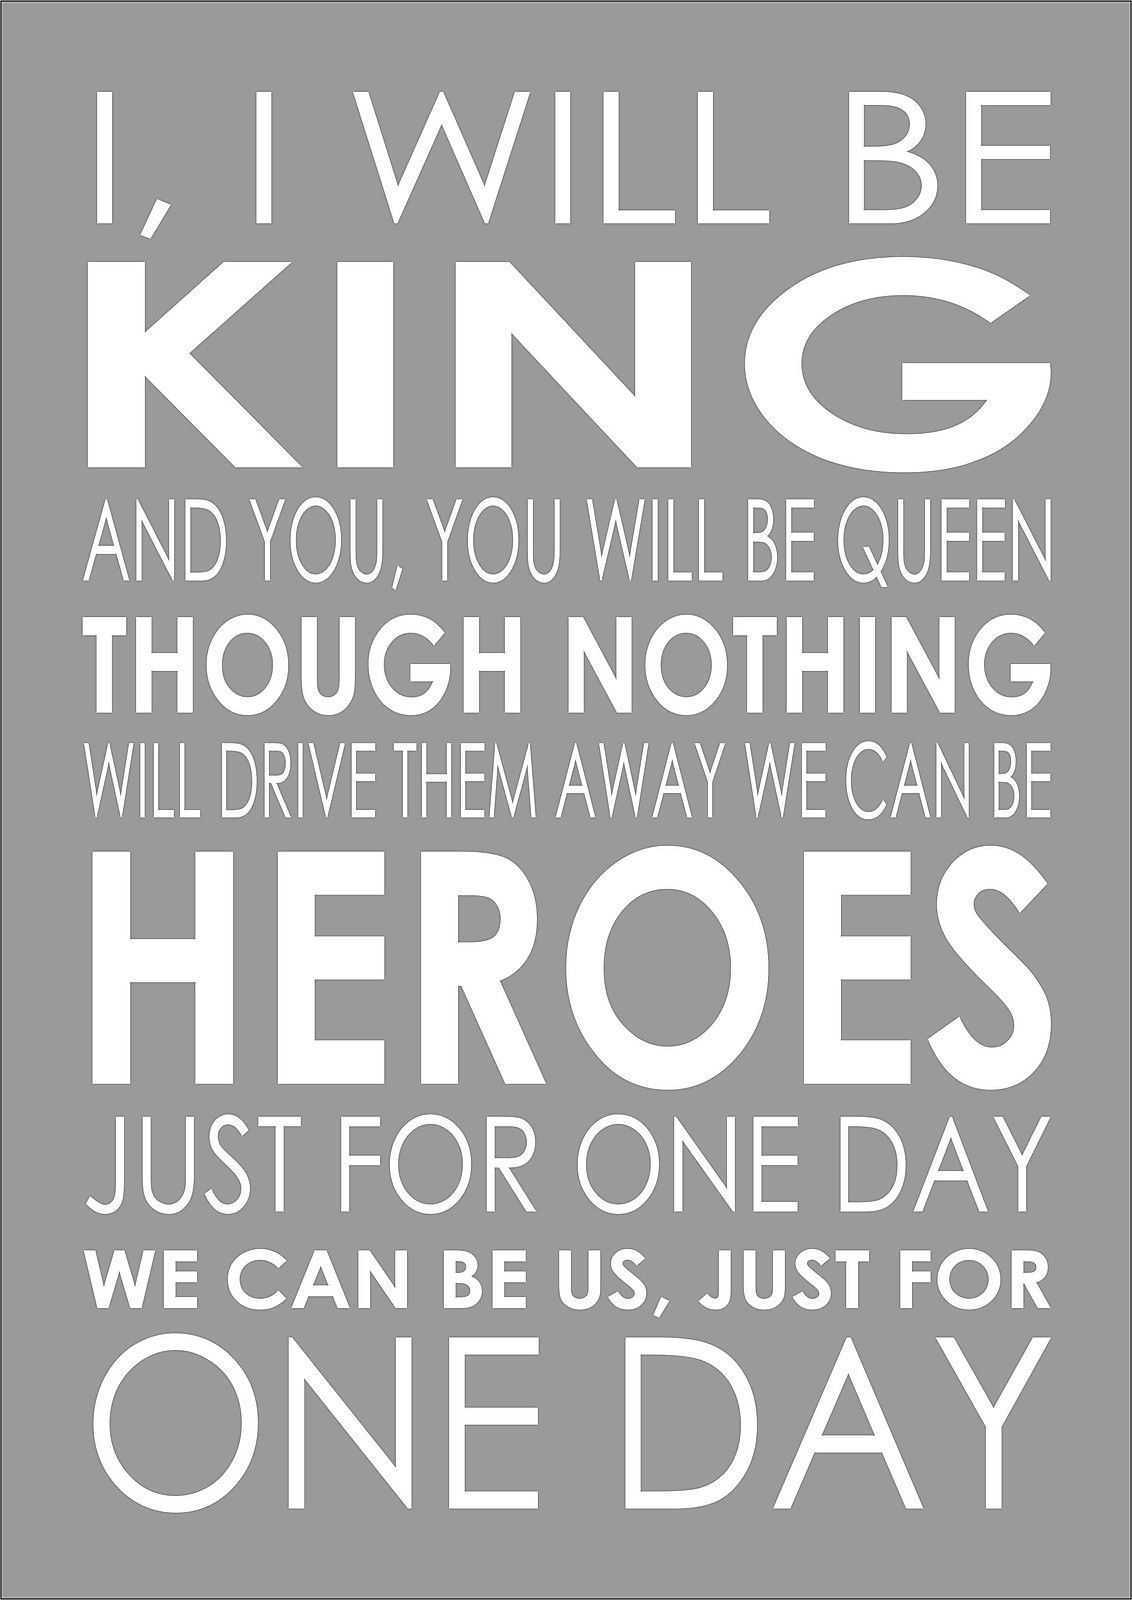 Details about Heroes David Bowie Word Wall Typography Song